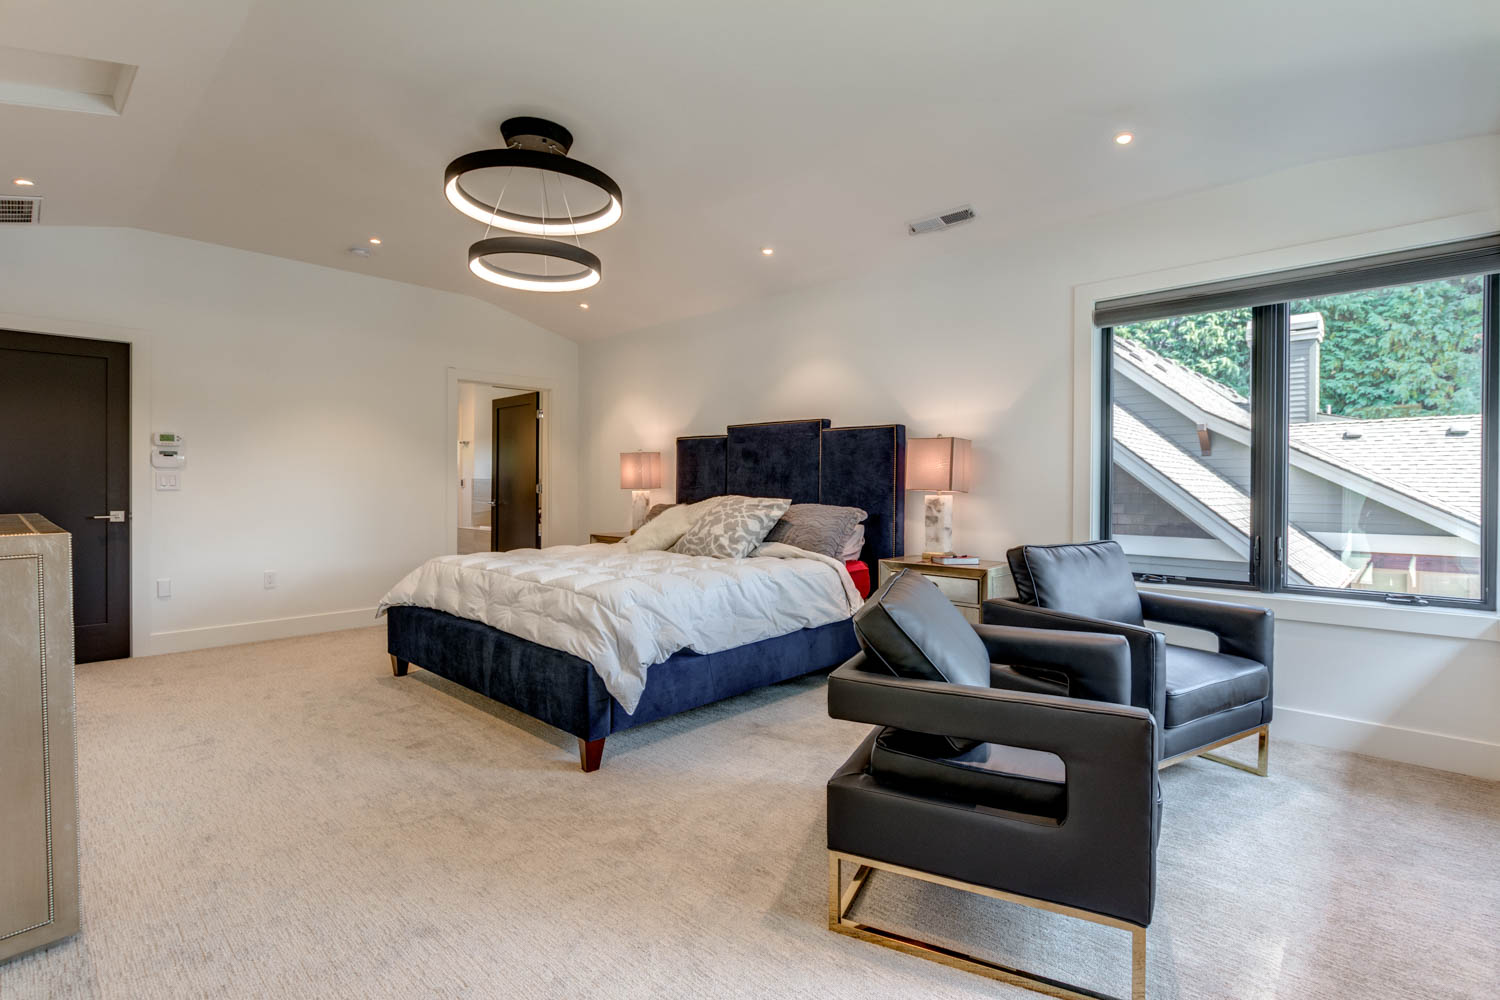 West One Homes Morey Court 067